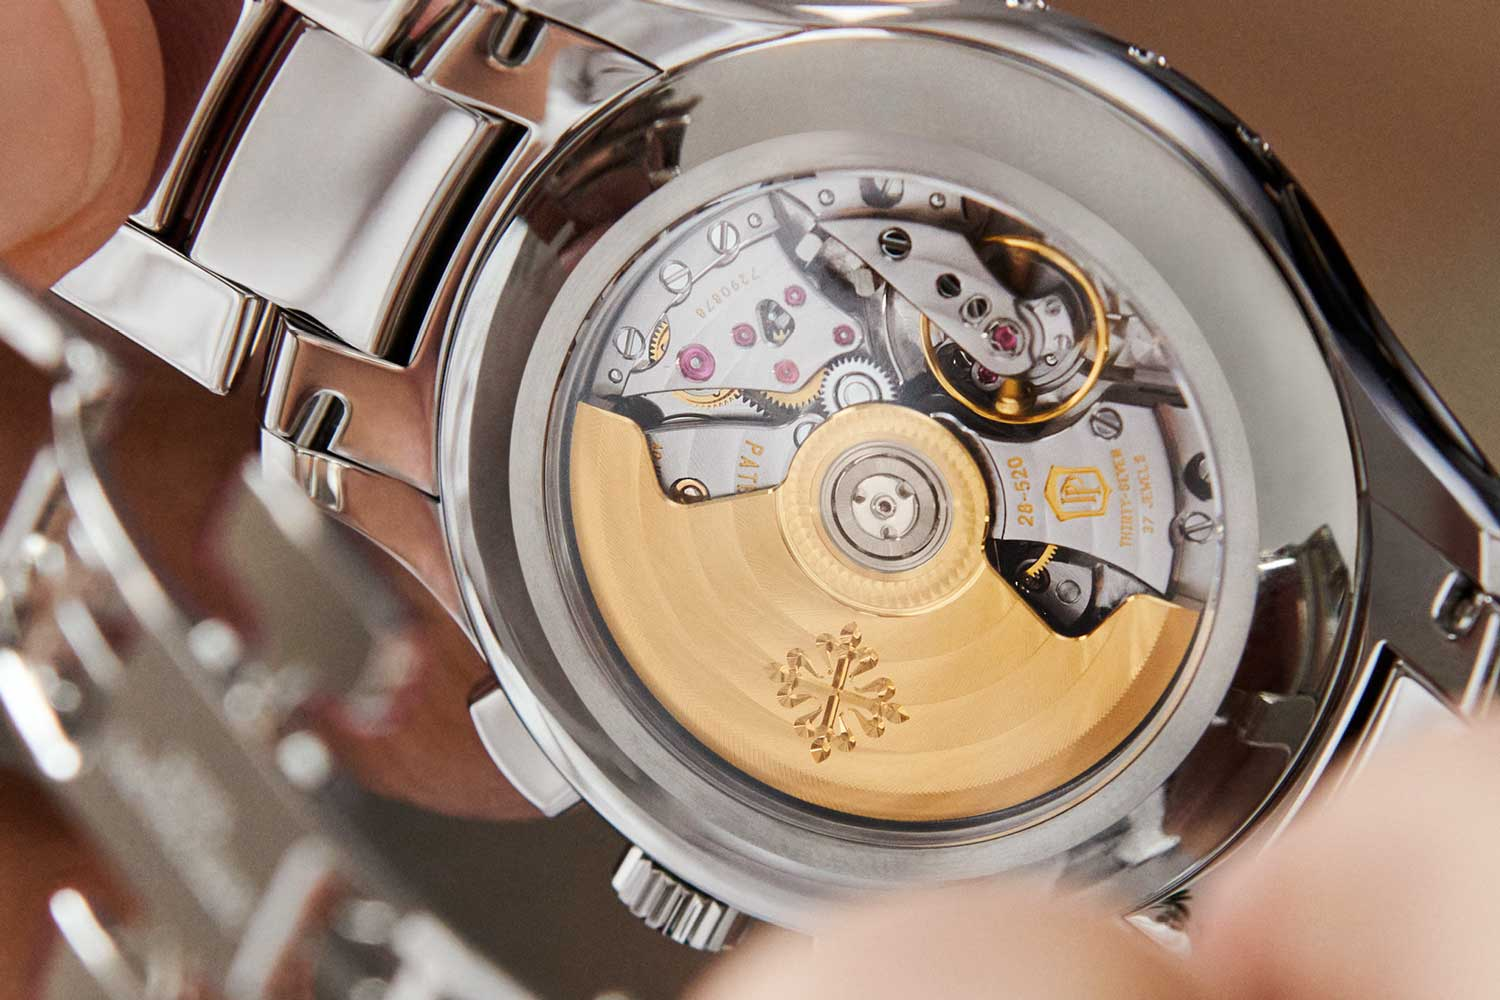 Reference 5905/1A-001 Self-winding Flyback Chronograph with Annual Calendar in stainless steel